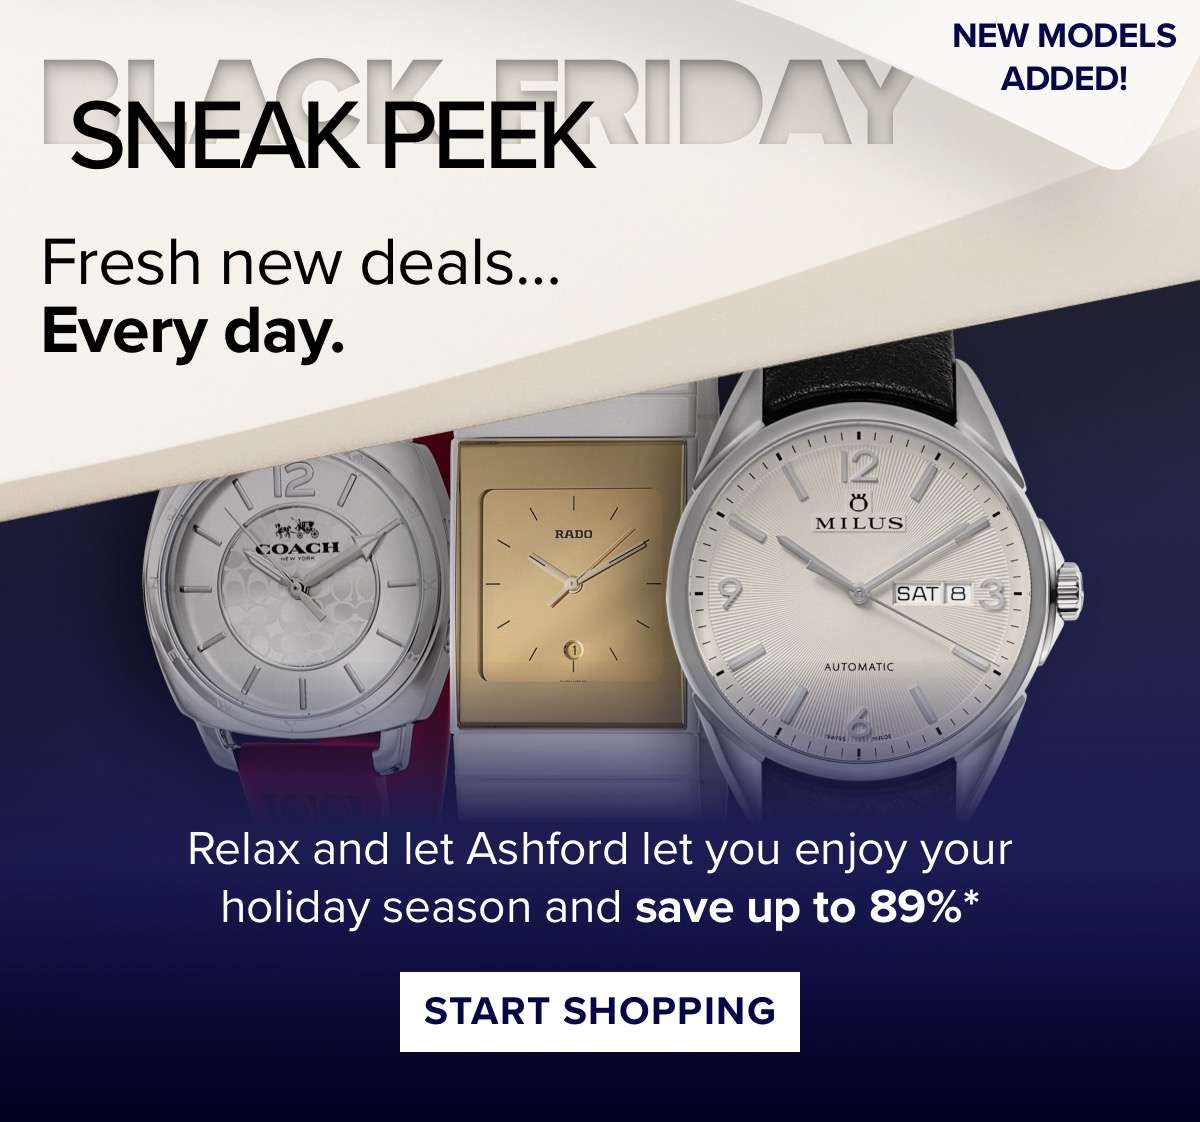 Sneak Peek fresh new deals... Every day relax and let Ashford let you enjoy your holiday season and save up to 89%*